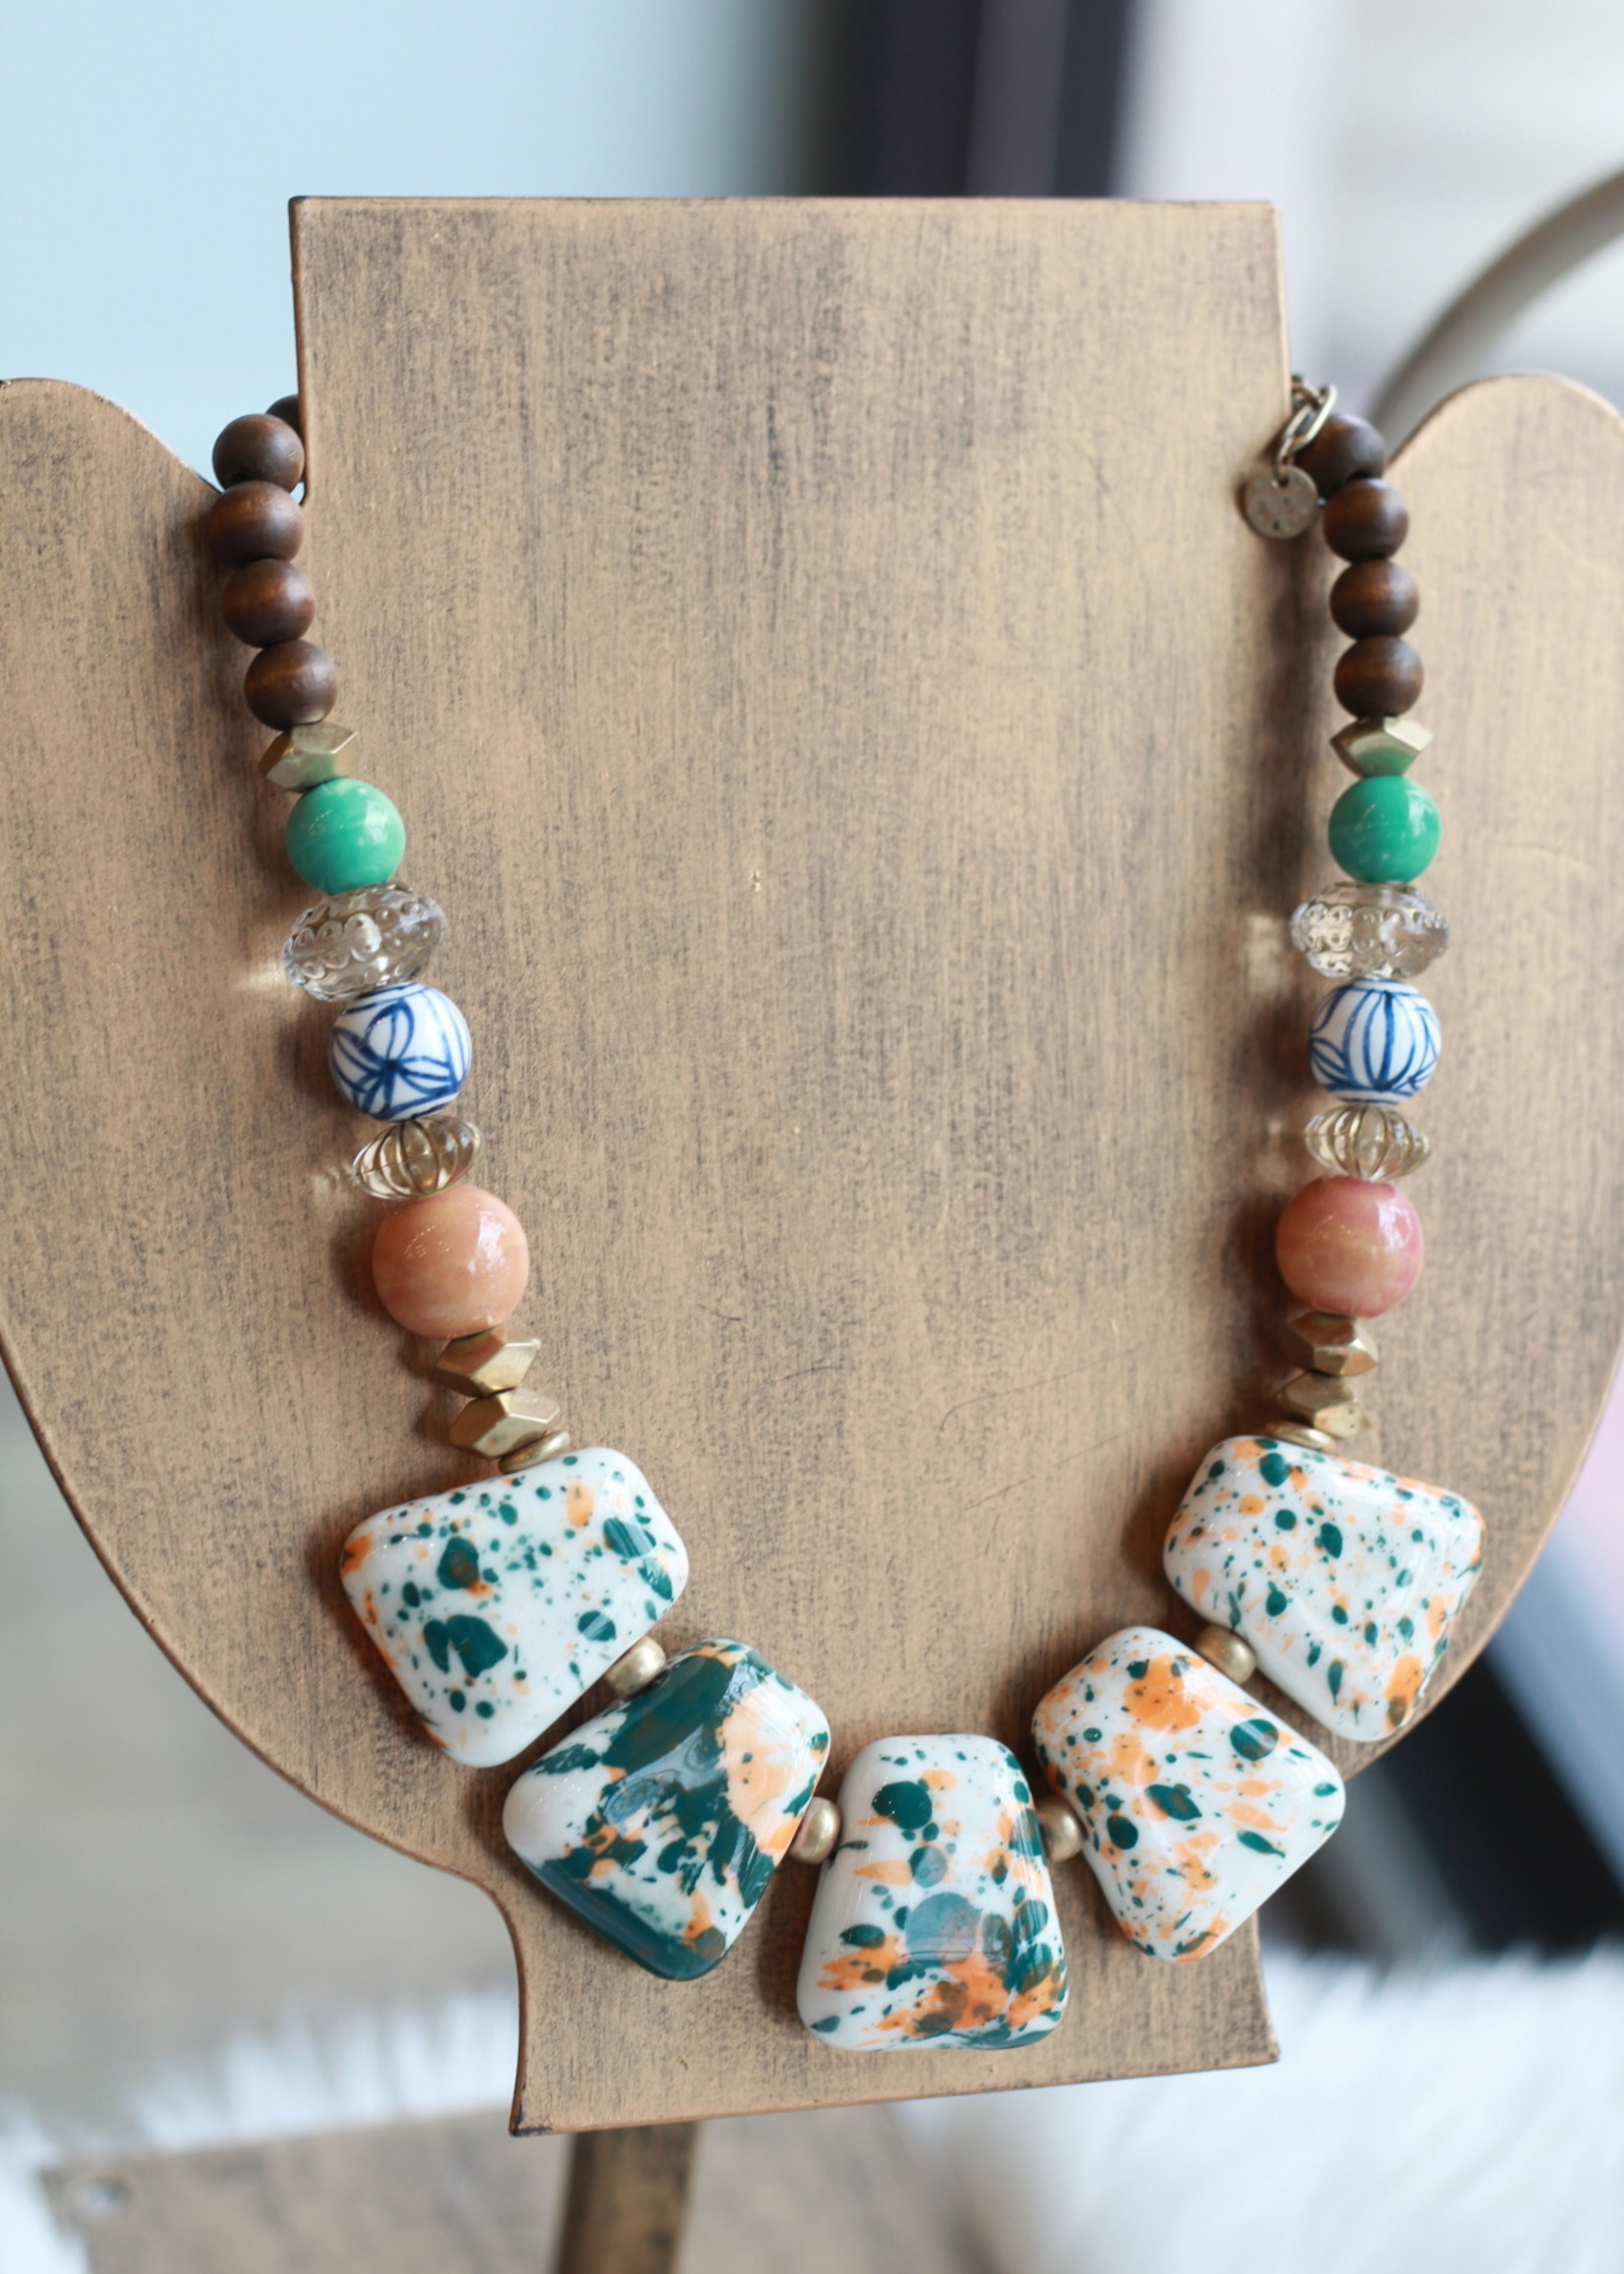 Erin McDermott Come Together Necklace